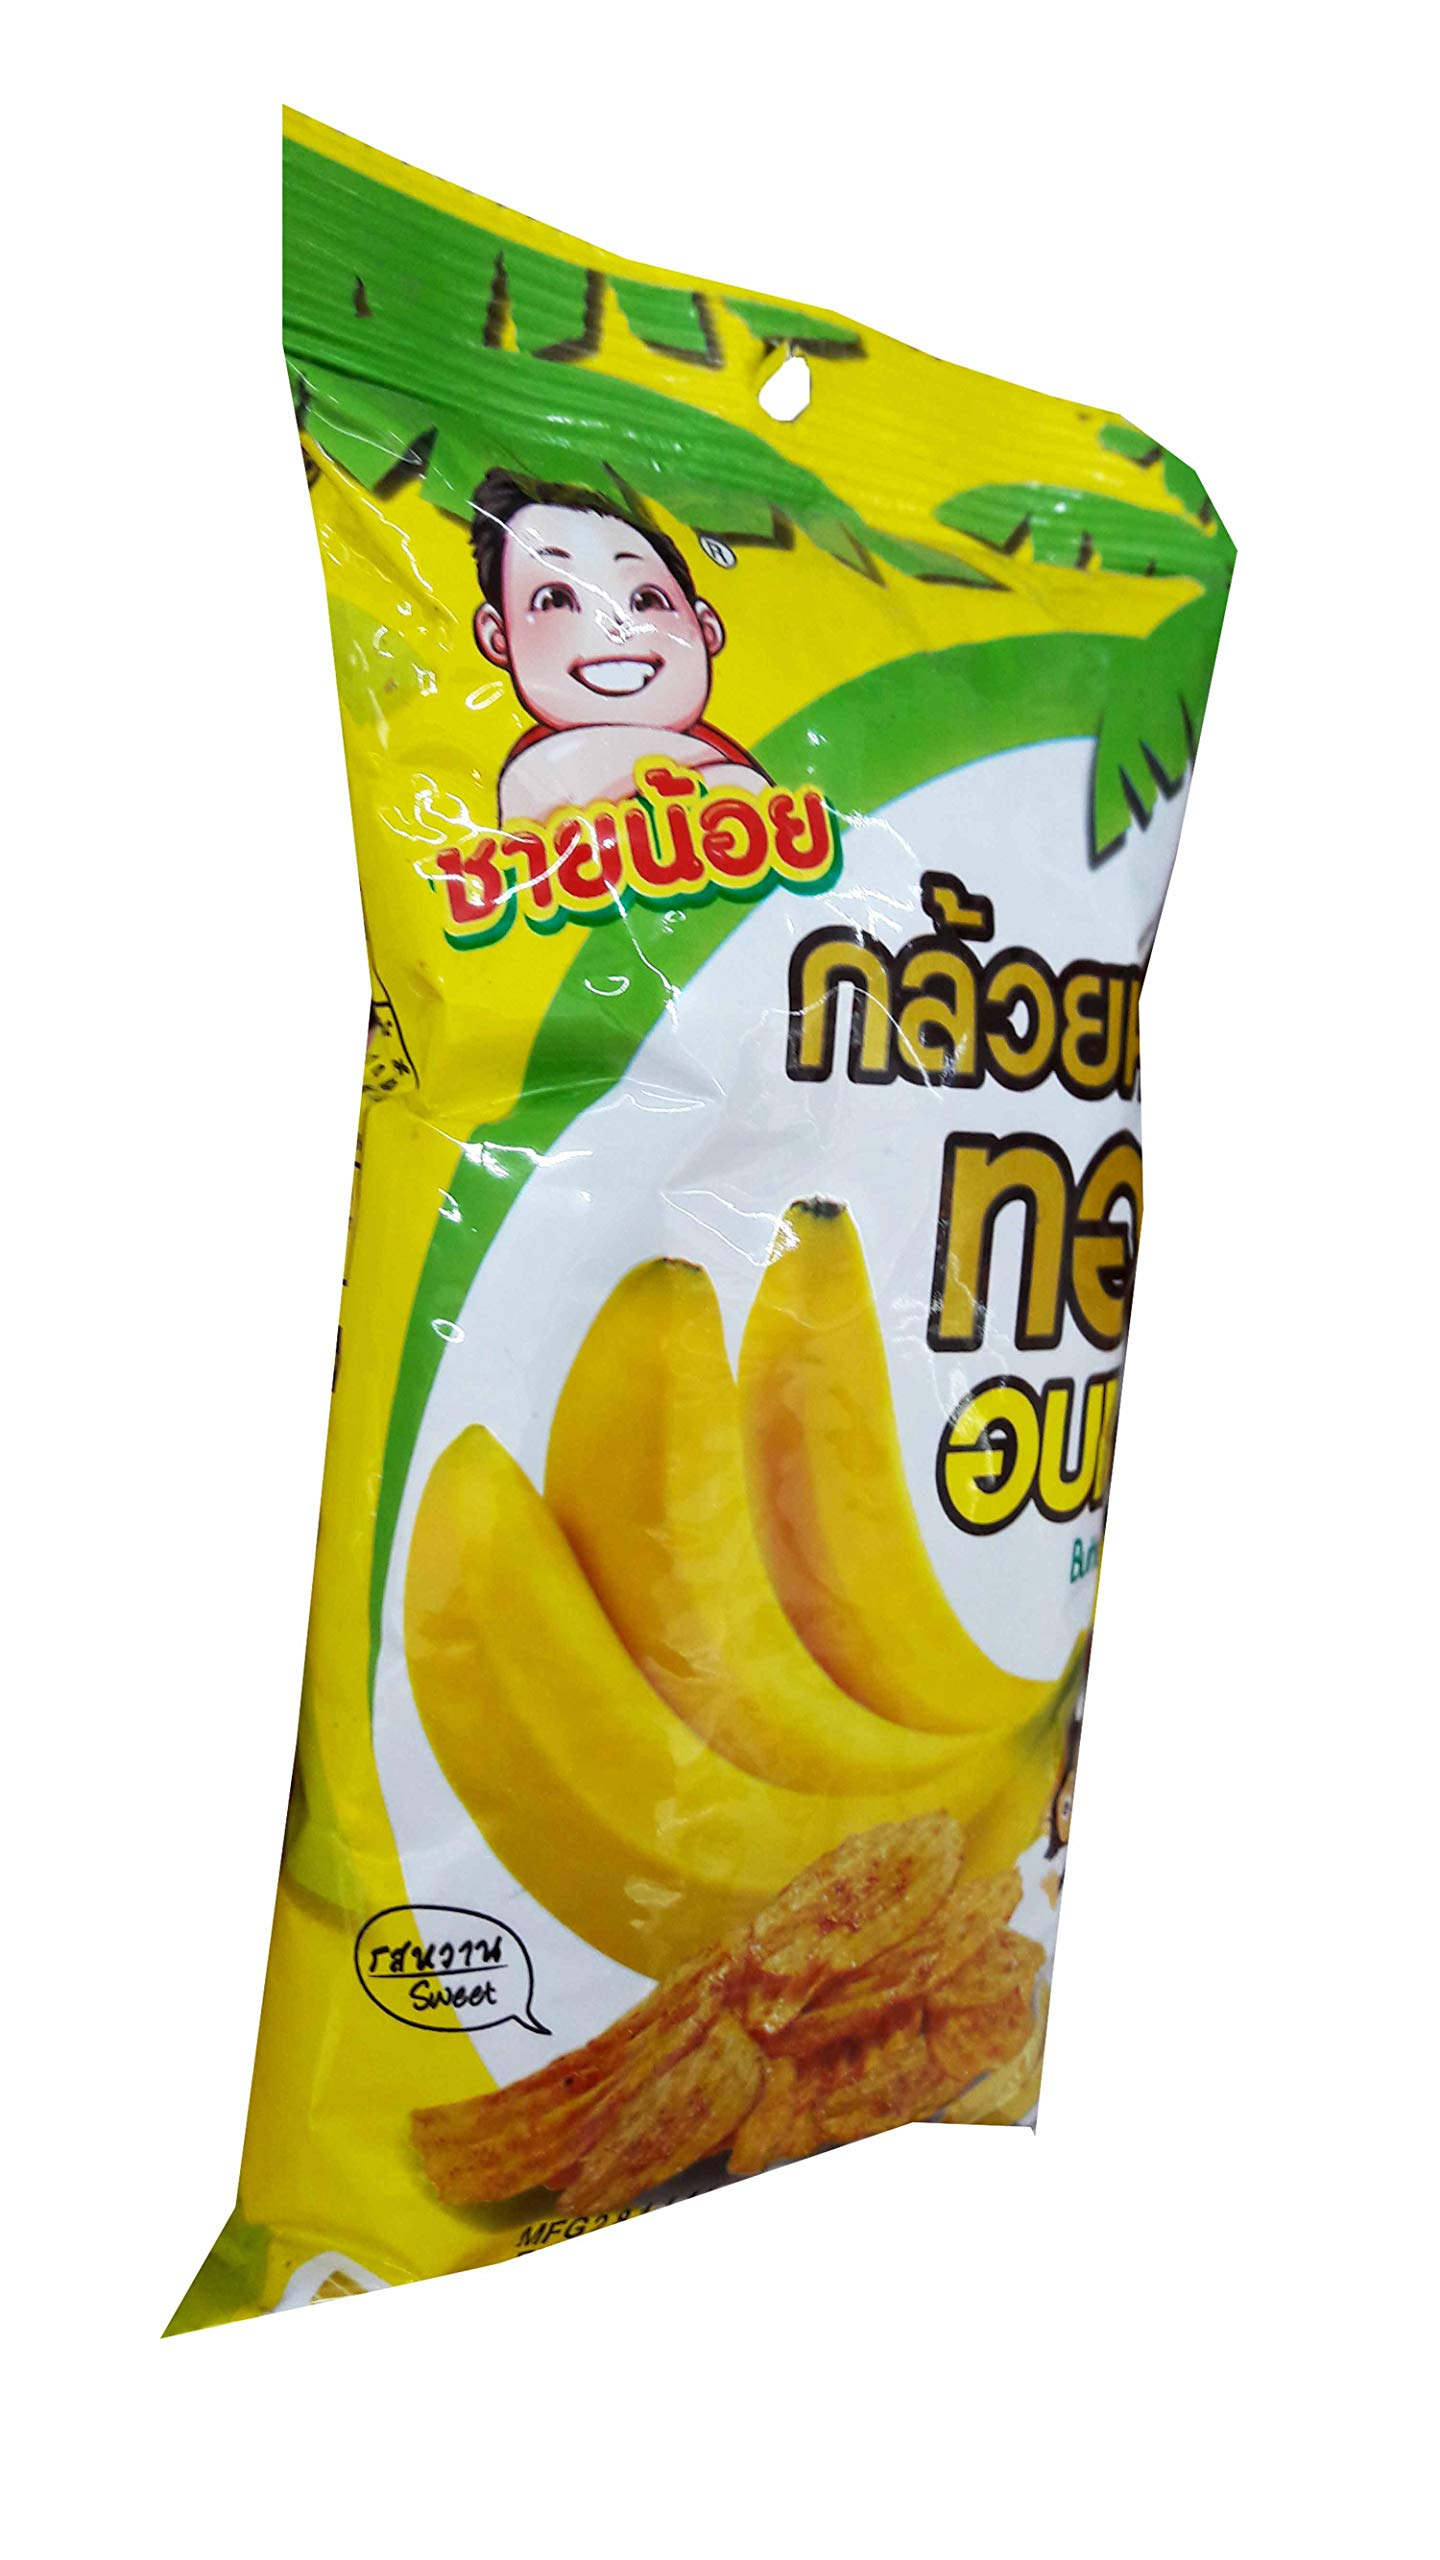 6 Packs of Butter Banana Chips, Deliicious Snack from Chainoi brand (30 g/pack).